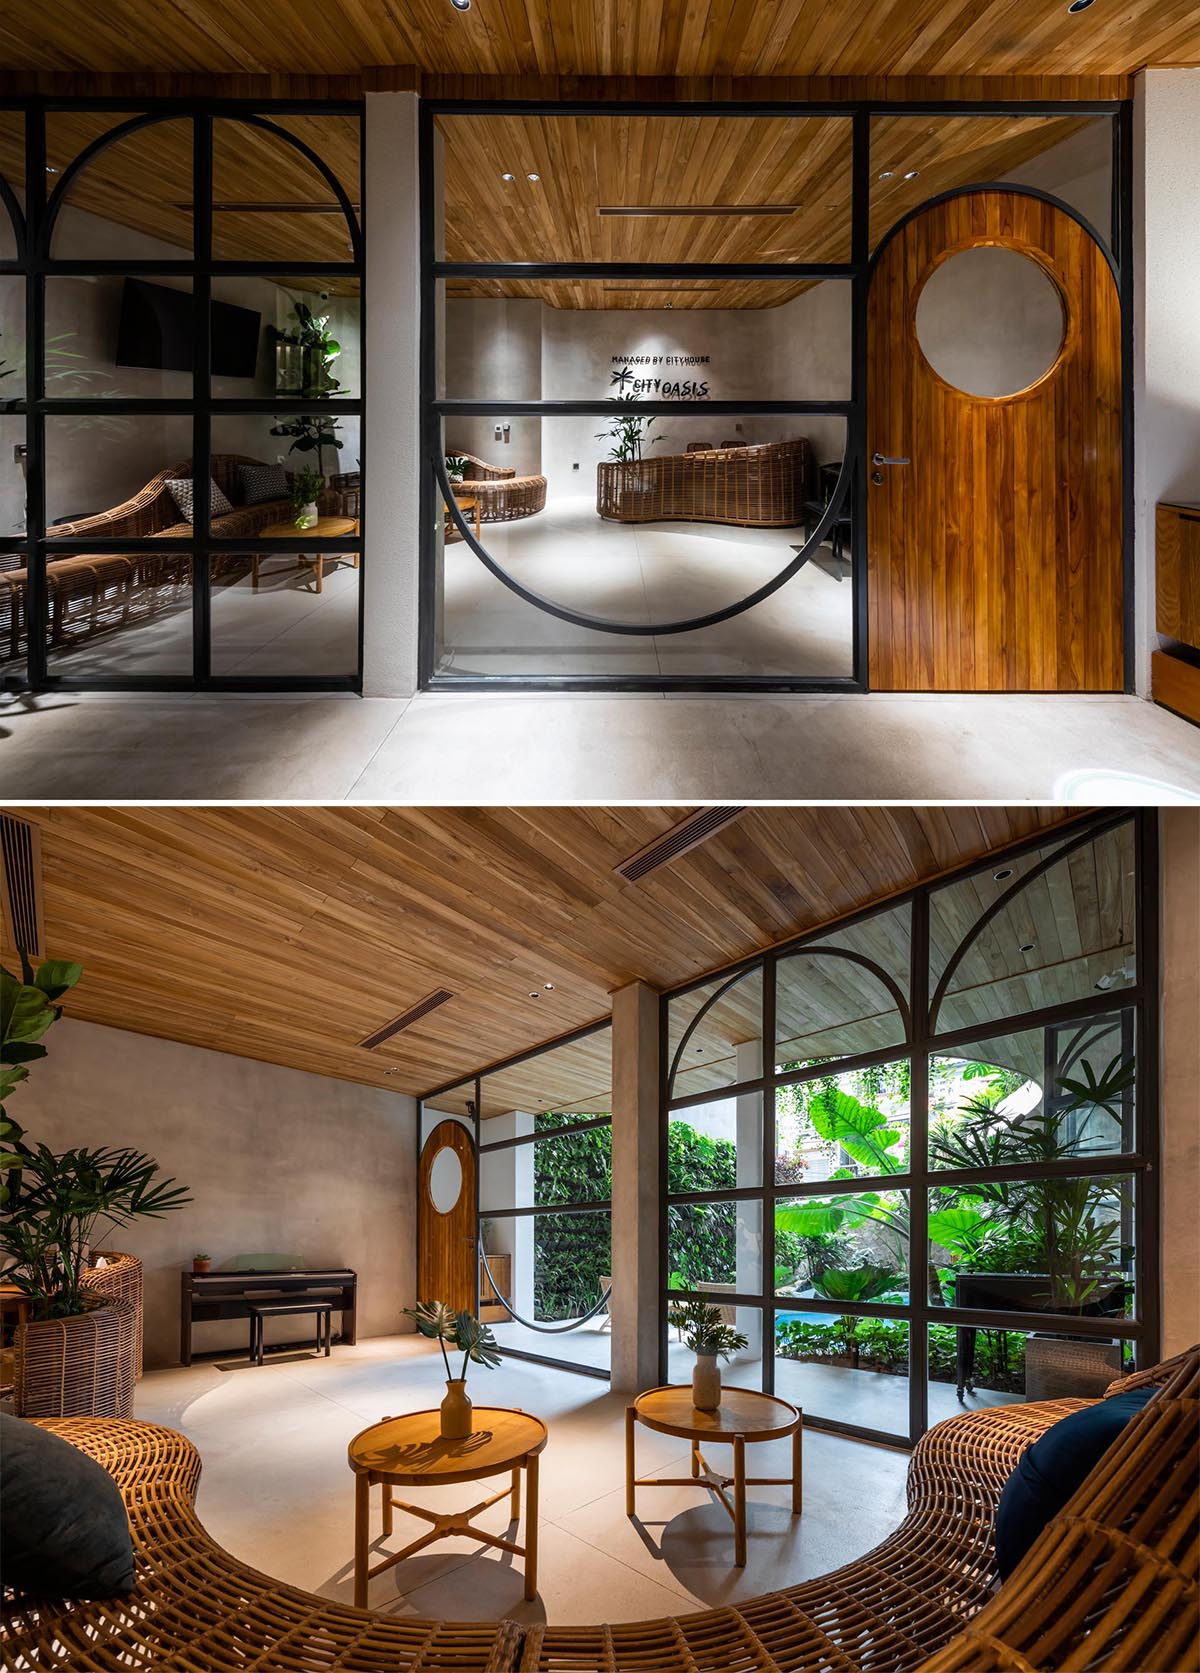 The interior of this building features materials like woods, local split stones, concrete, terrazzo, and rattan.